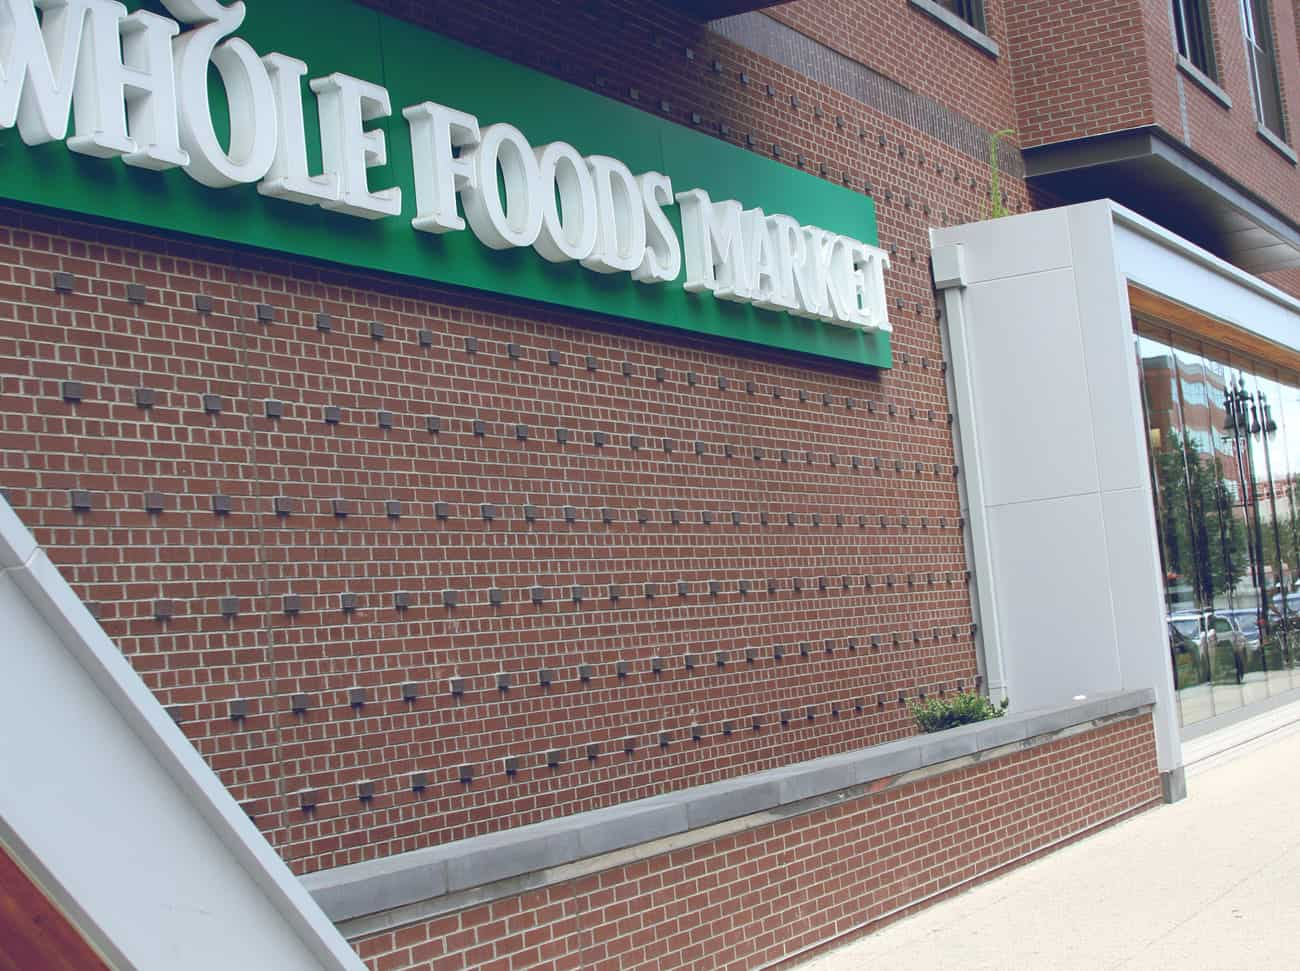 Whole Foods Market on H Street